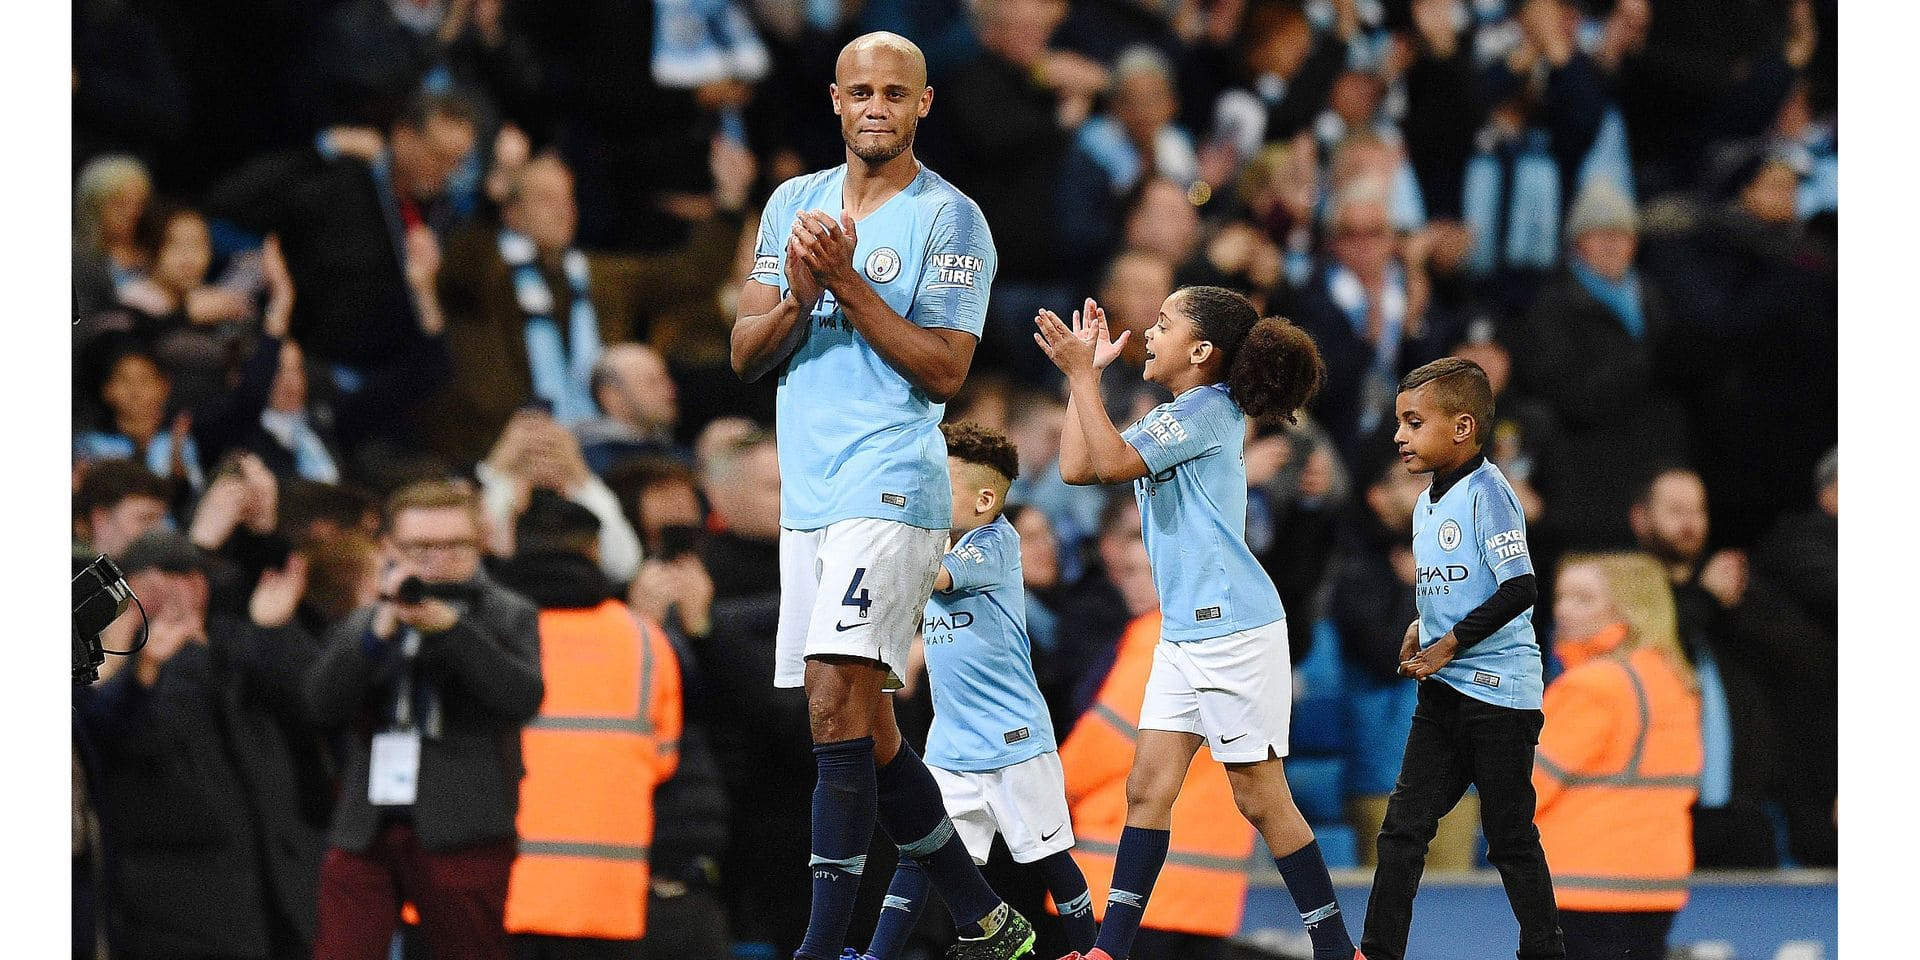 Manchester City's Belgian defender Vincent Kompany takes part in a lap of appreciation after the final whistle of the English Premier League football match between Manchester City and Leicester City at the Etihad Stadium in Manchester, north west England, on May 6, 2019. (Photo by Oli SCARFF / AFP) / RESTRICTED TO EDITORIAL USE. No use with unauthorized audio, video, data, fixture lists, club/league logos or 'live' services. Online in-match use limited to 120 images. An additional 40 images may be used in extra time. No video emulation. Social media in-match use limited to 120 images. An additional 40 images may be used in extra time. No use in betting publications, games or single club/league/player publications. /